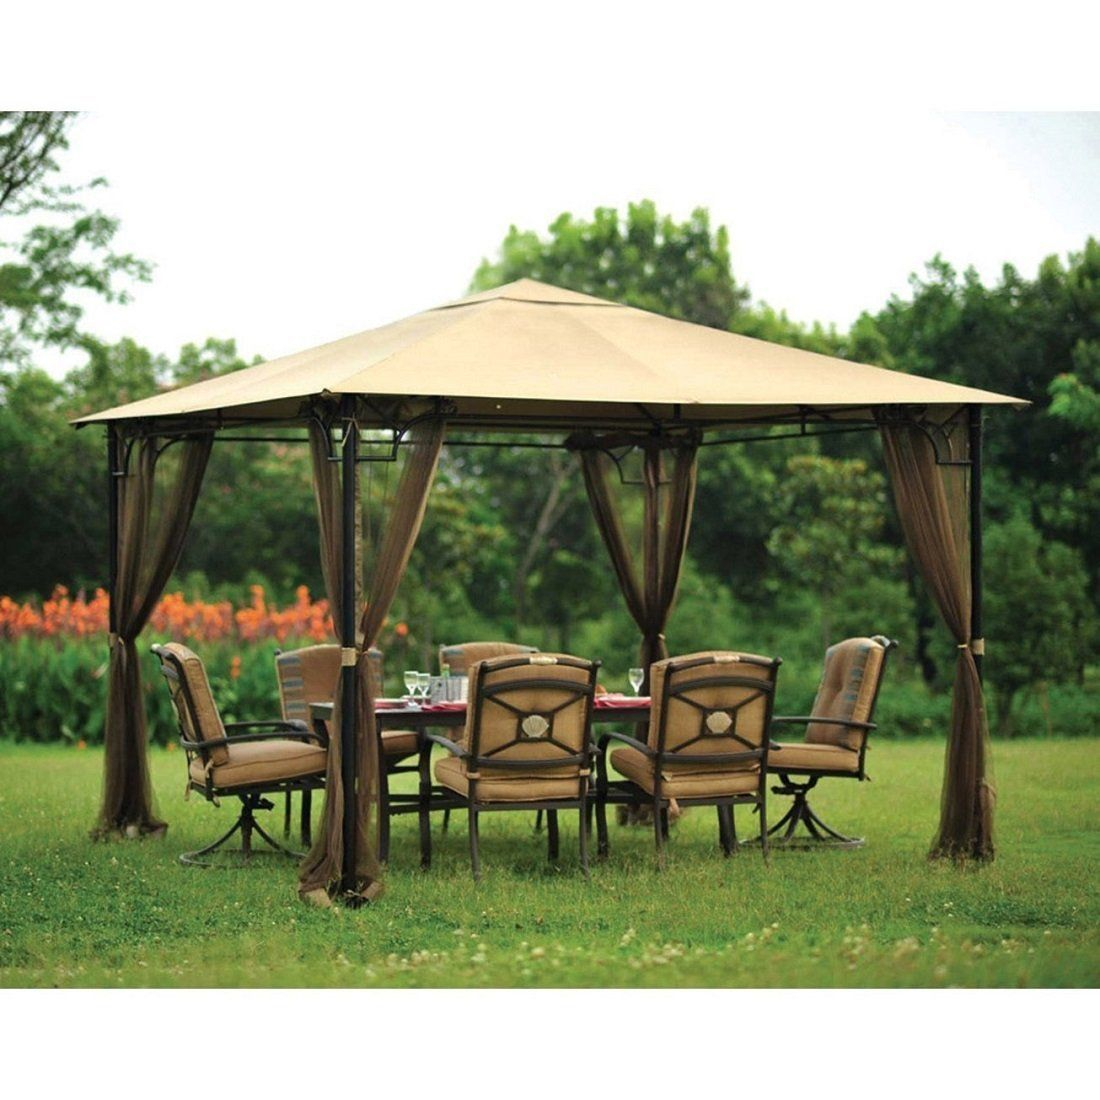 Living Accents X Gazebo Netting (gazebo Sold Separately): Living Accents  Gazebo Mosquito Netting (Netting Only)